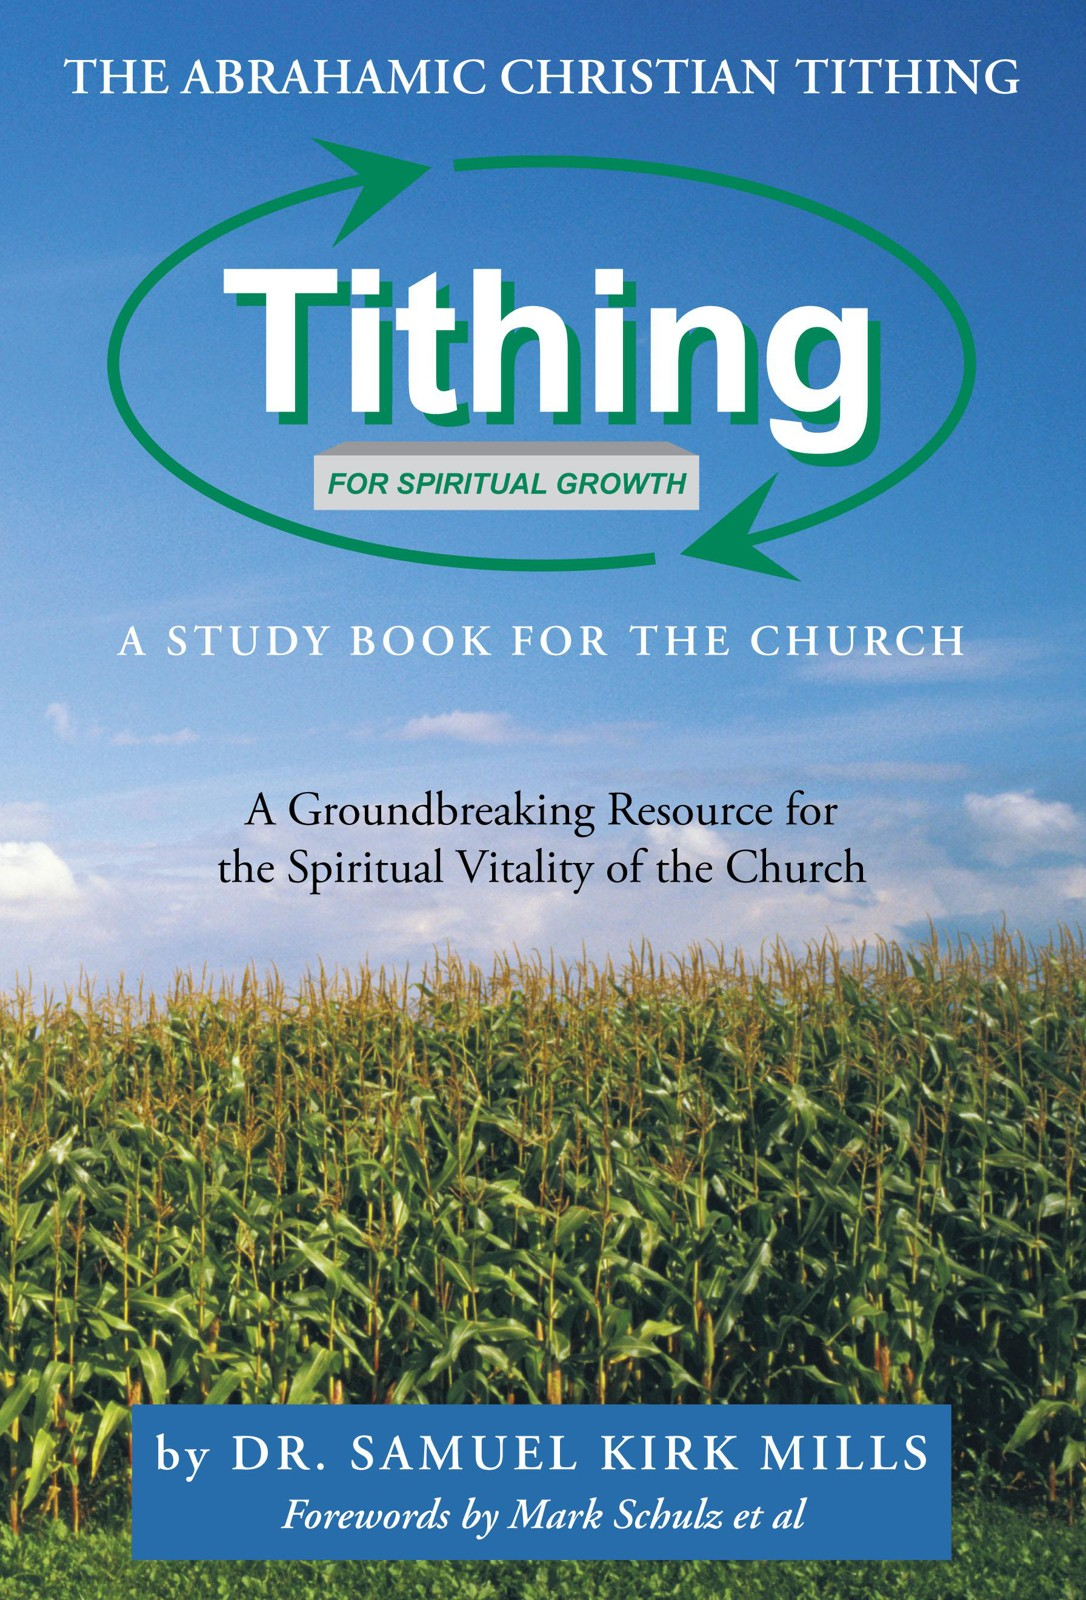 The Abrahamic Christian Tithing: A Study Book for the Church